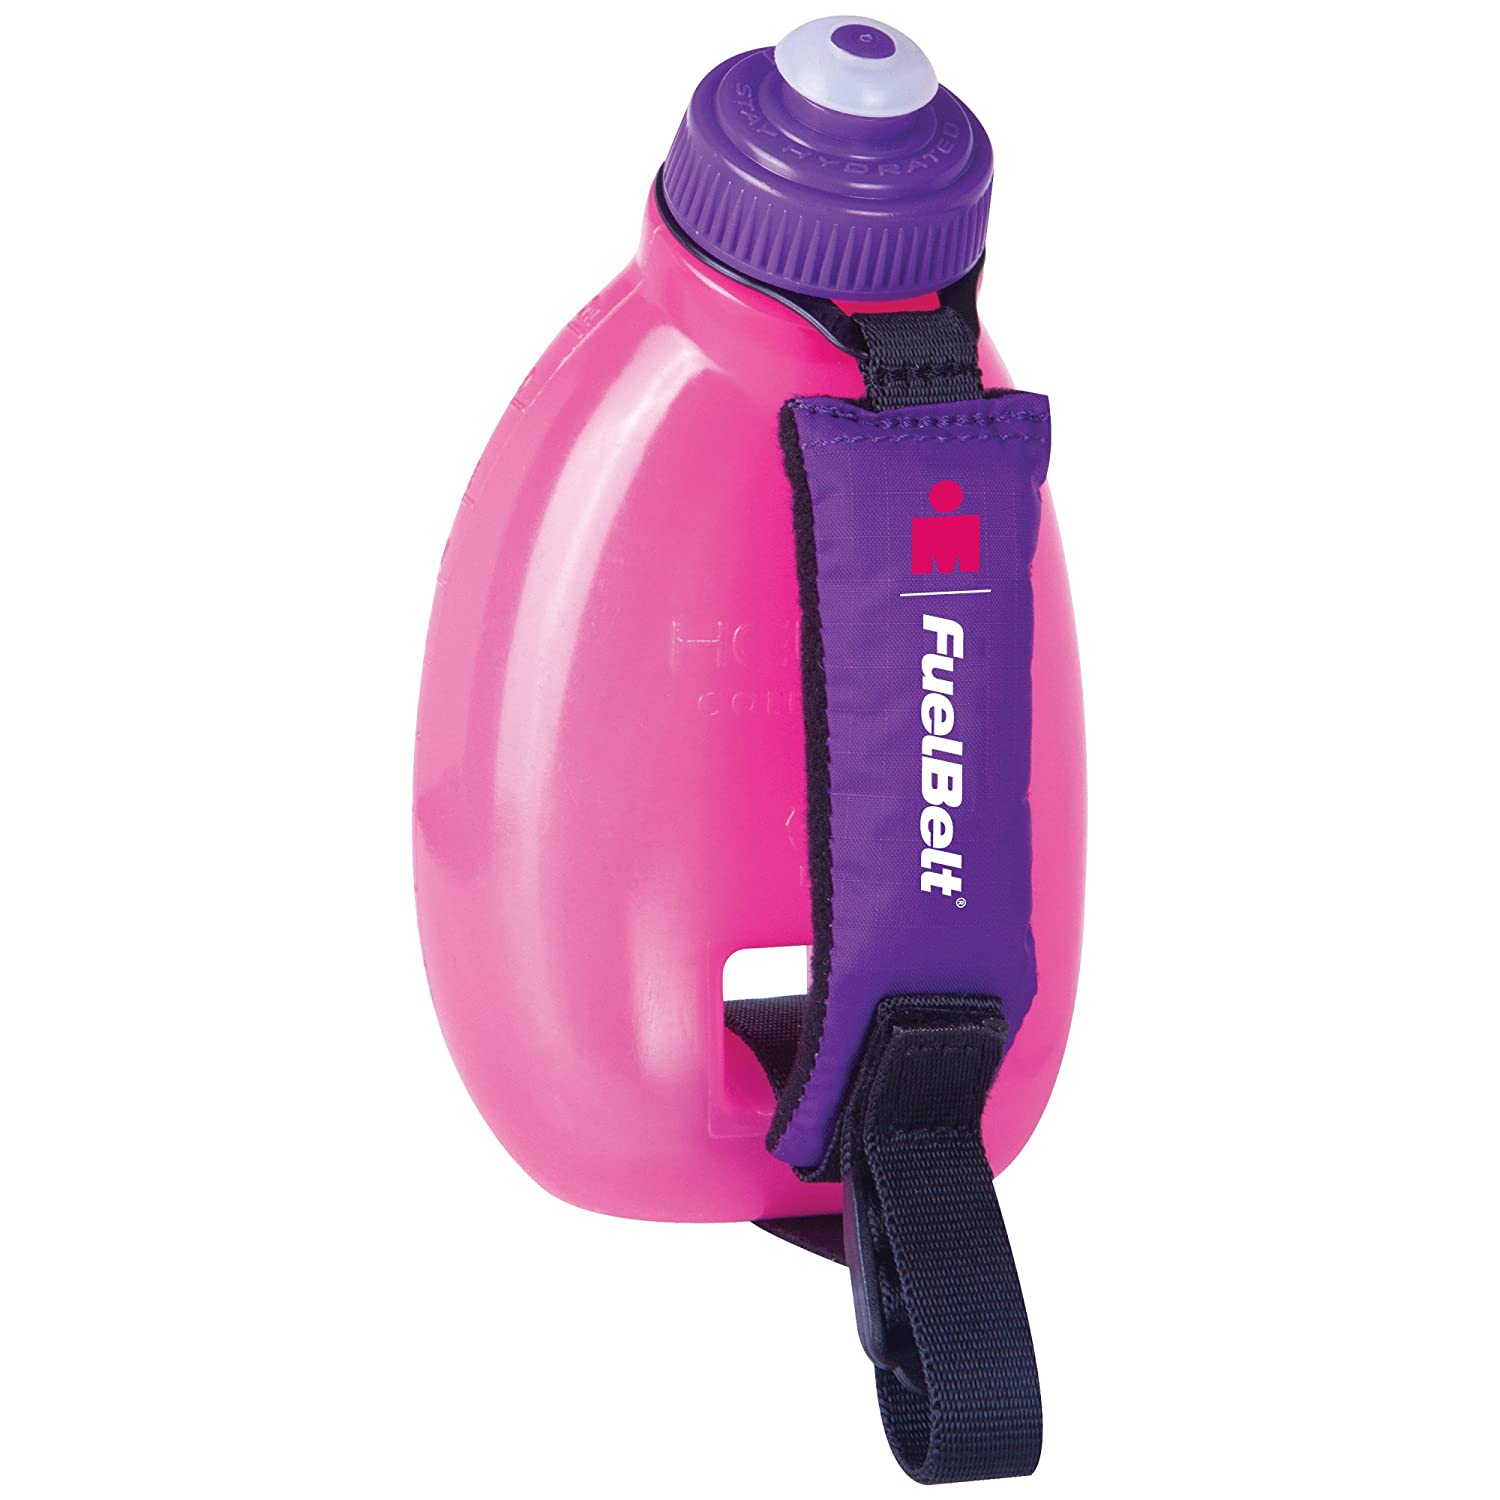 FueltBelt Hydration Accessory FuelBelt Ironman Helium Sprint Palm Holder 10oz, Pink/Purple, One Size, 60432#0014941